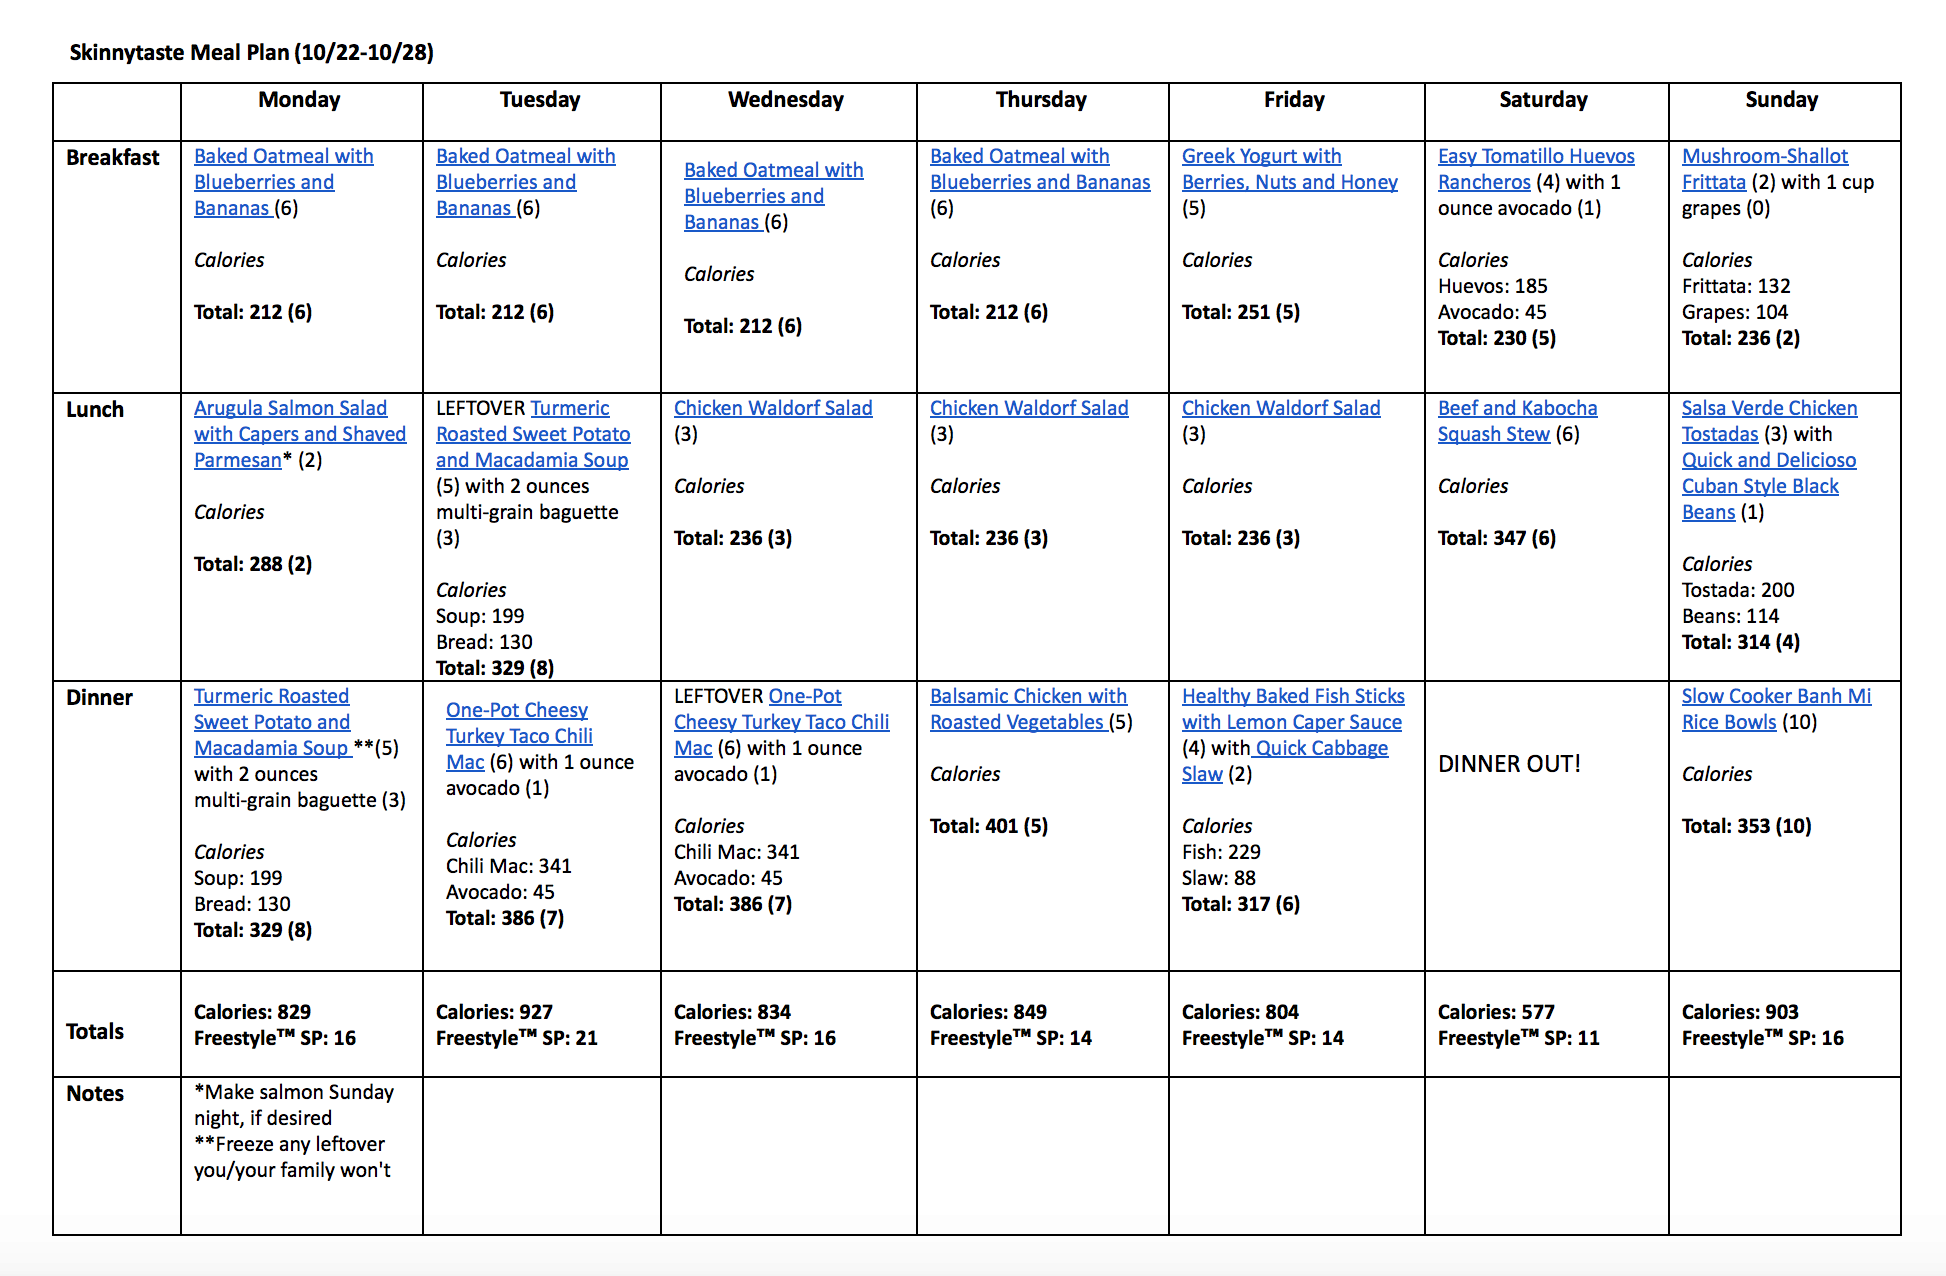 Skinnytaste Meal Plan (October 22-October 28)